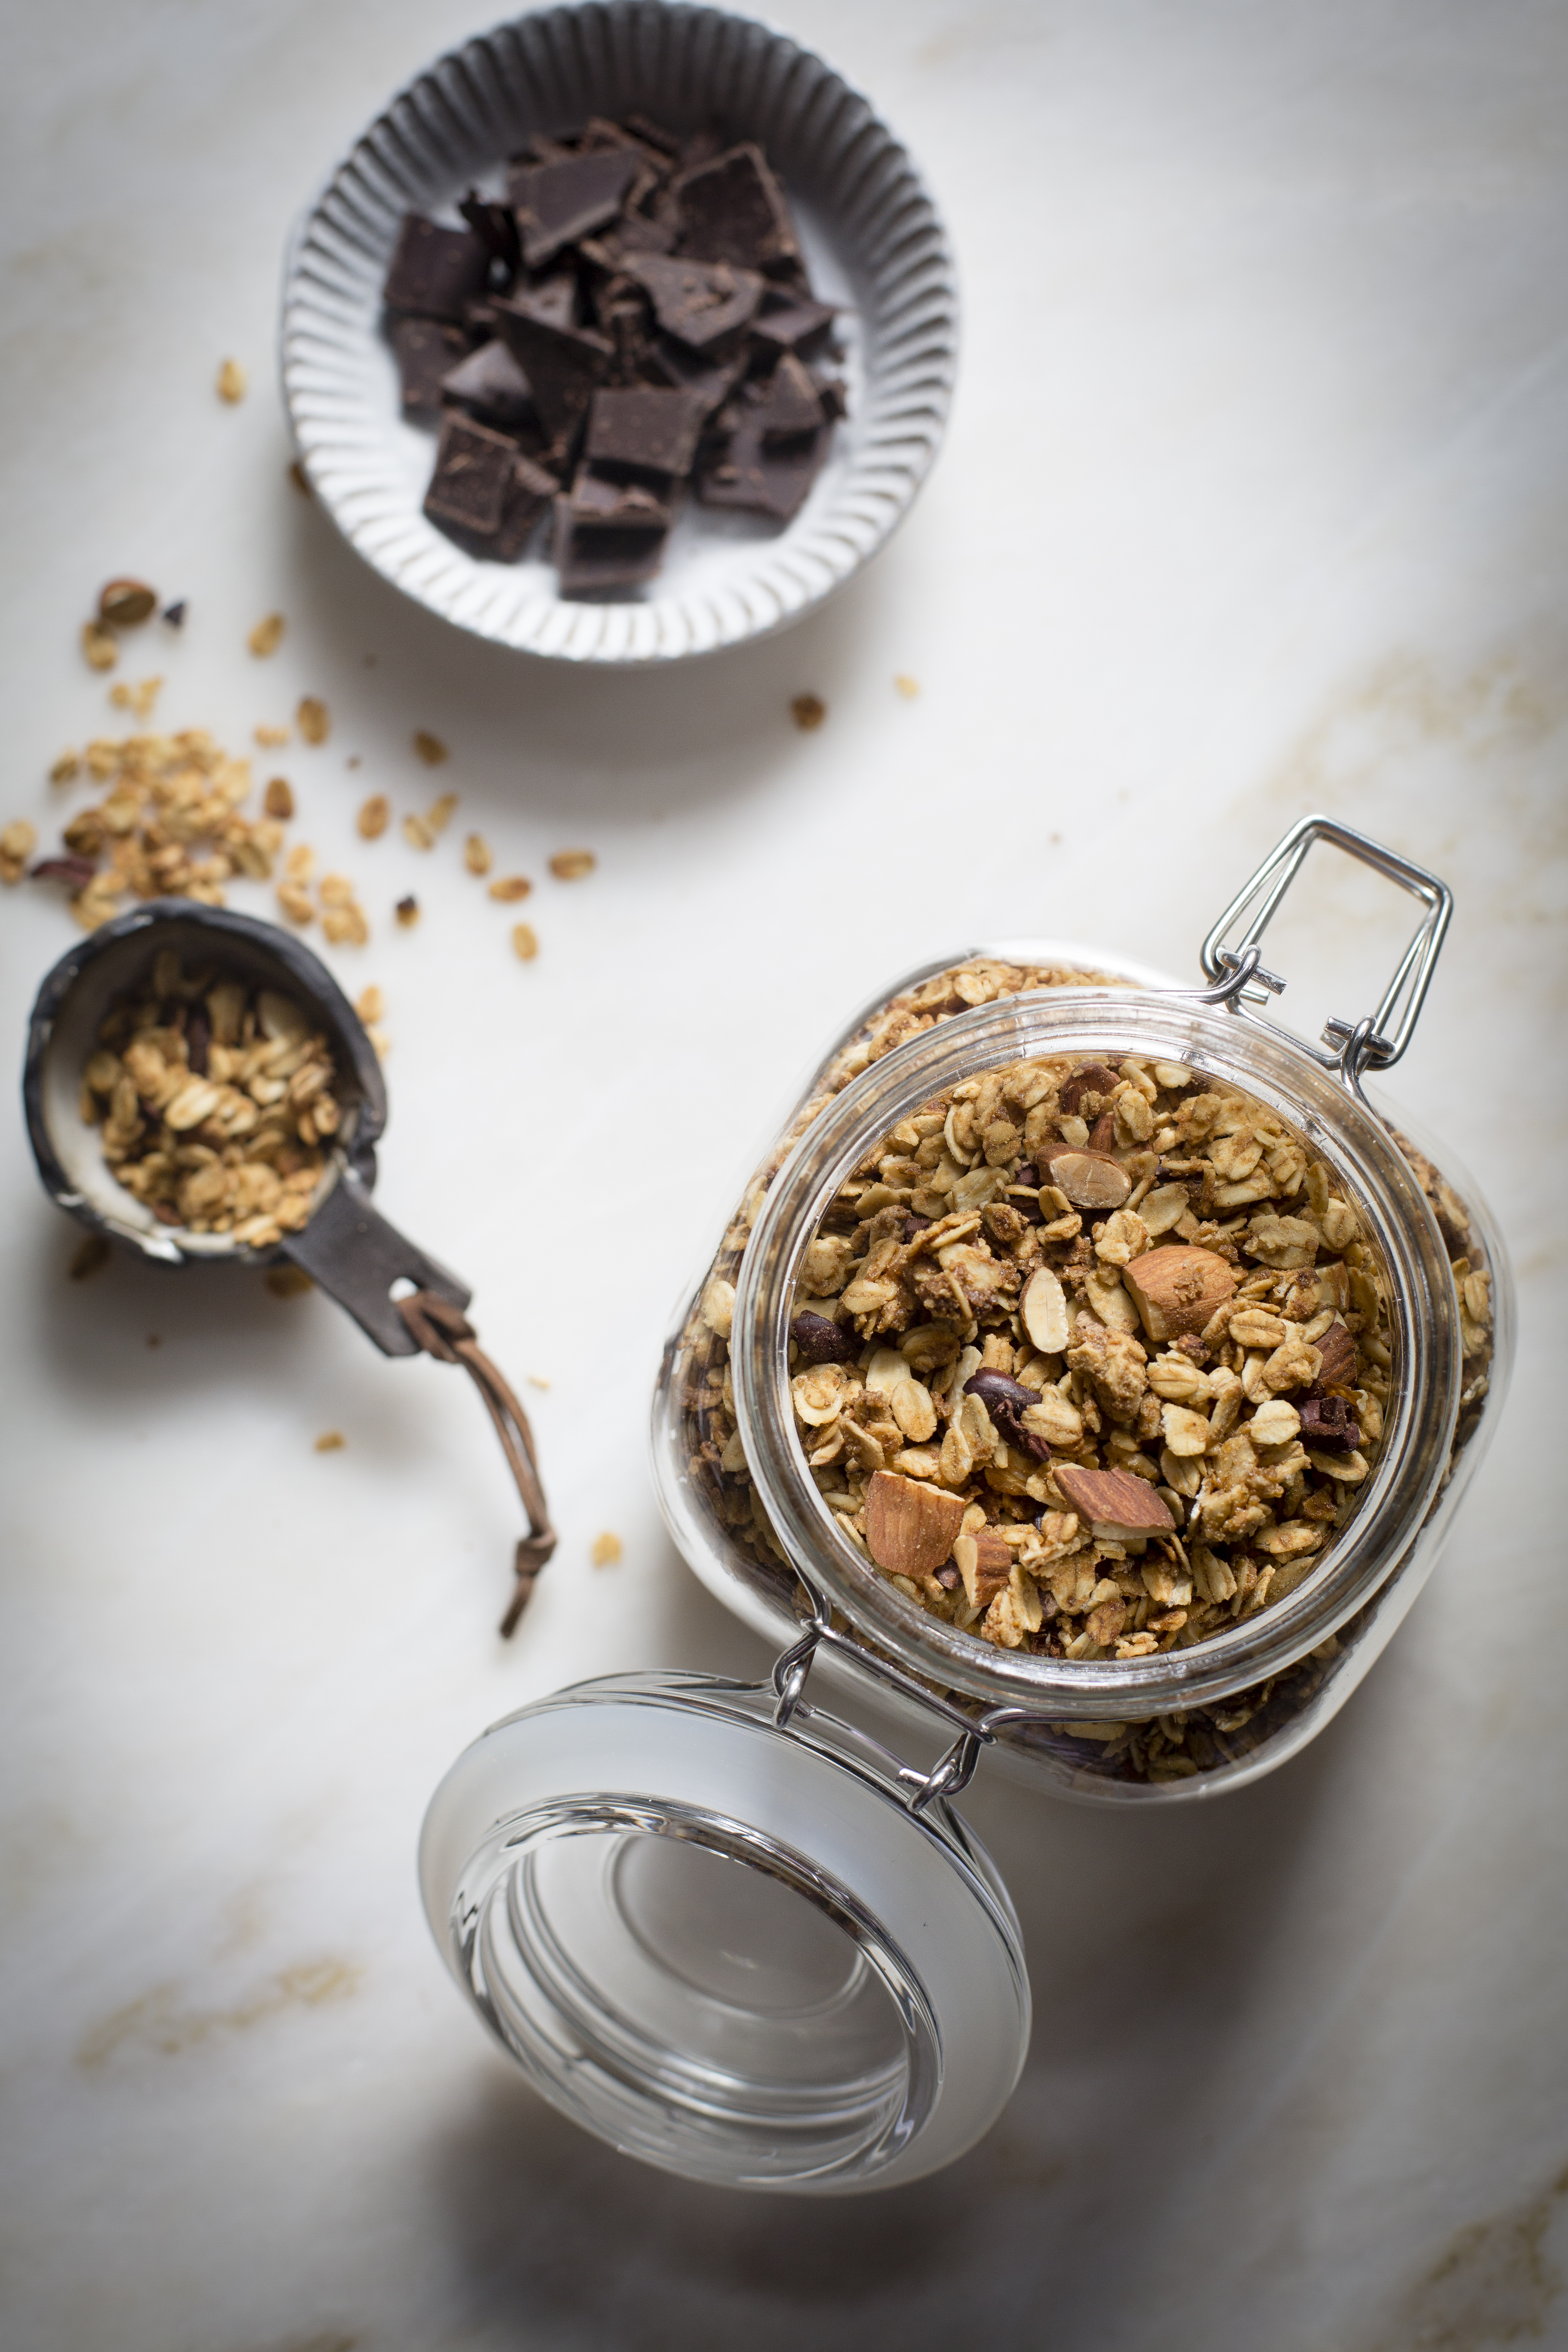 PEANUT BUTTER GRANOLA WITH COCOA NIBS AND BITTERSWEET CHOCOLATE